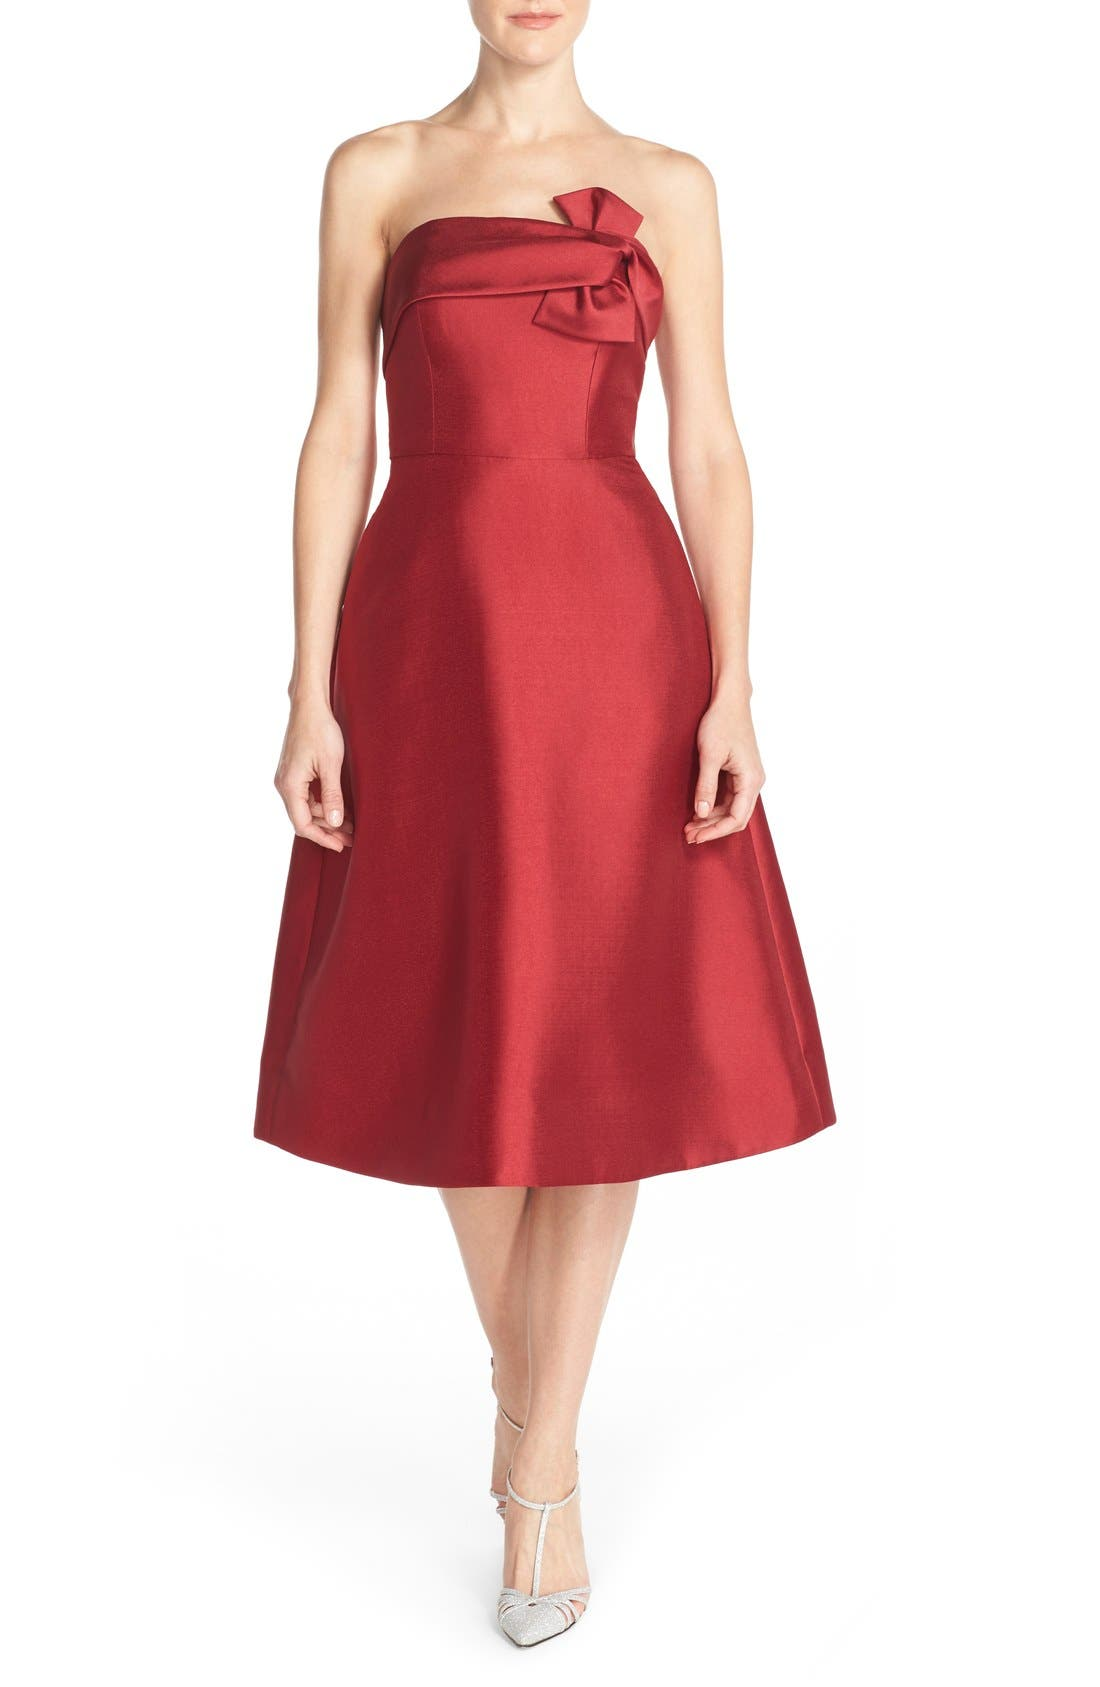 Alternate Image 1 Selected - ERIN erin fetherston 'Katie' Bow Neck Twill Fit & Flare Dress